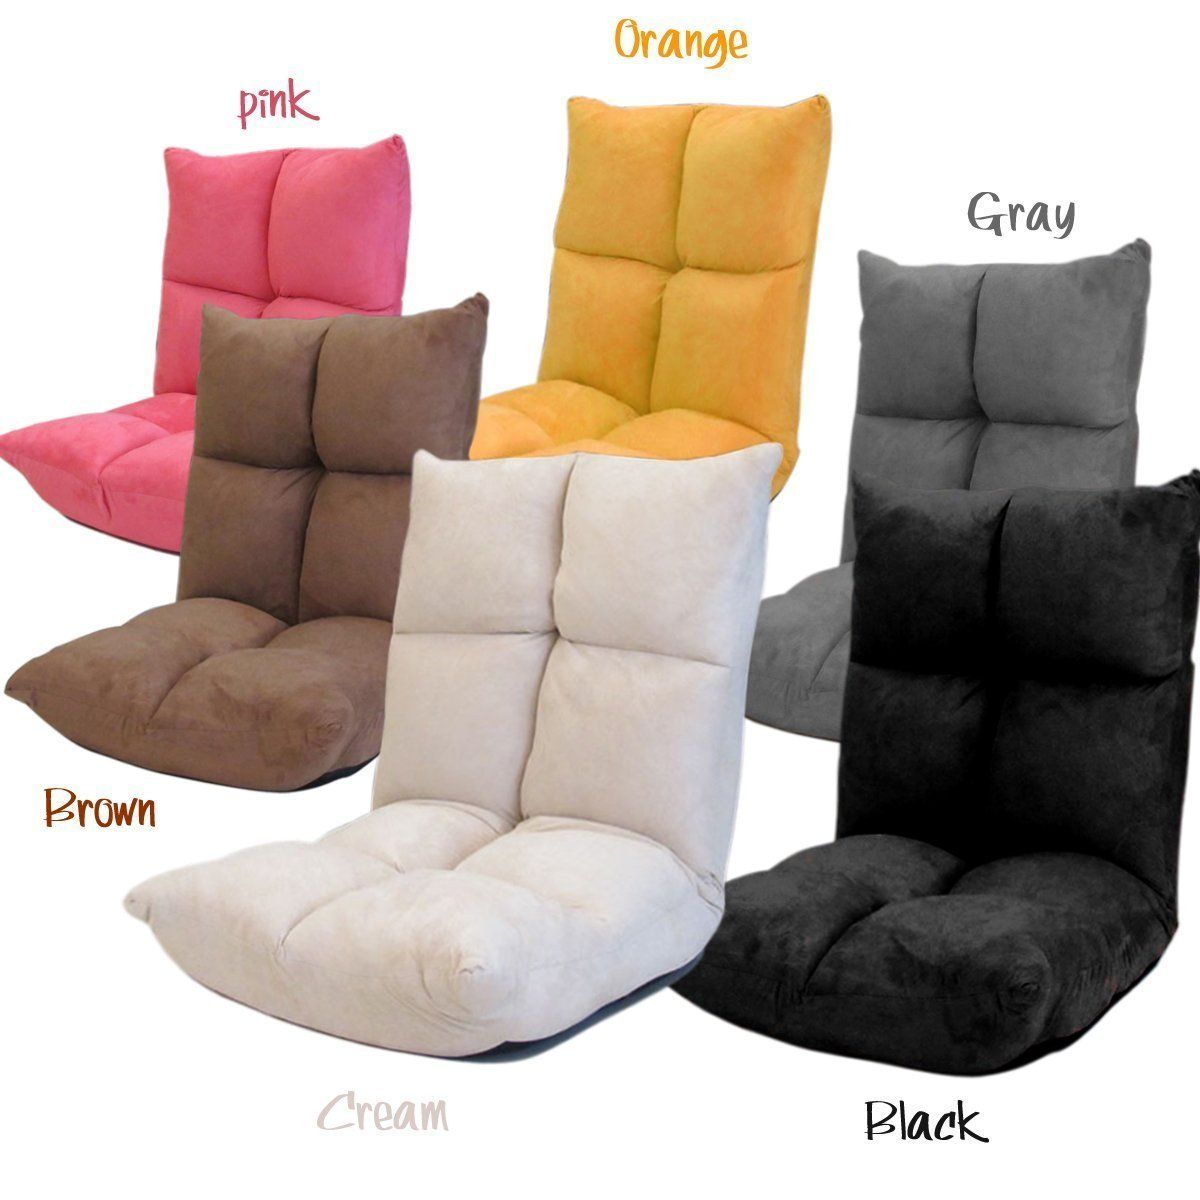 folding floor sofa chair cushion replacement singapore futon gaming the back rest can be adjusted